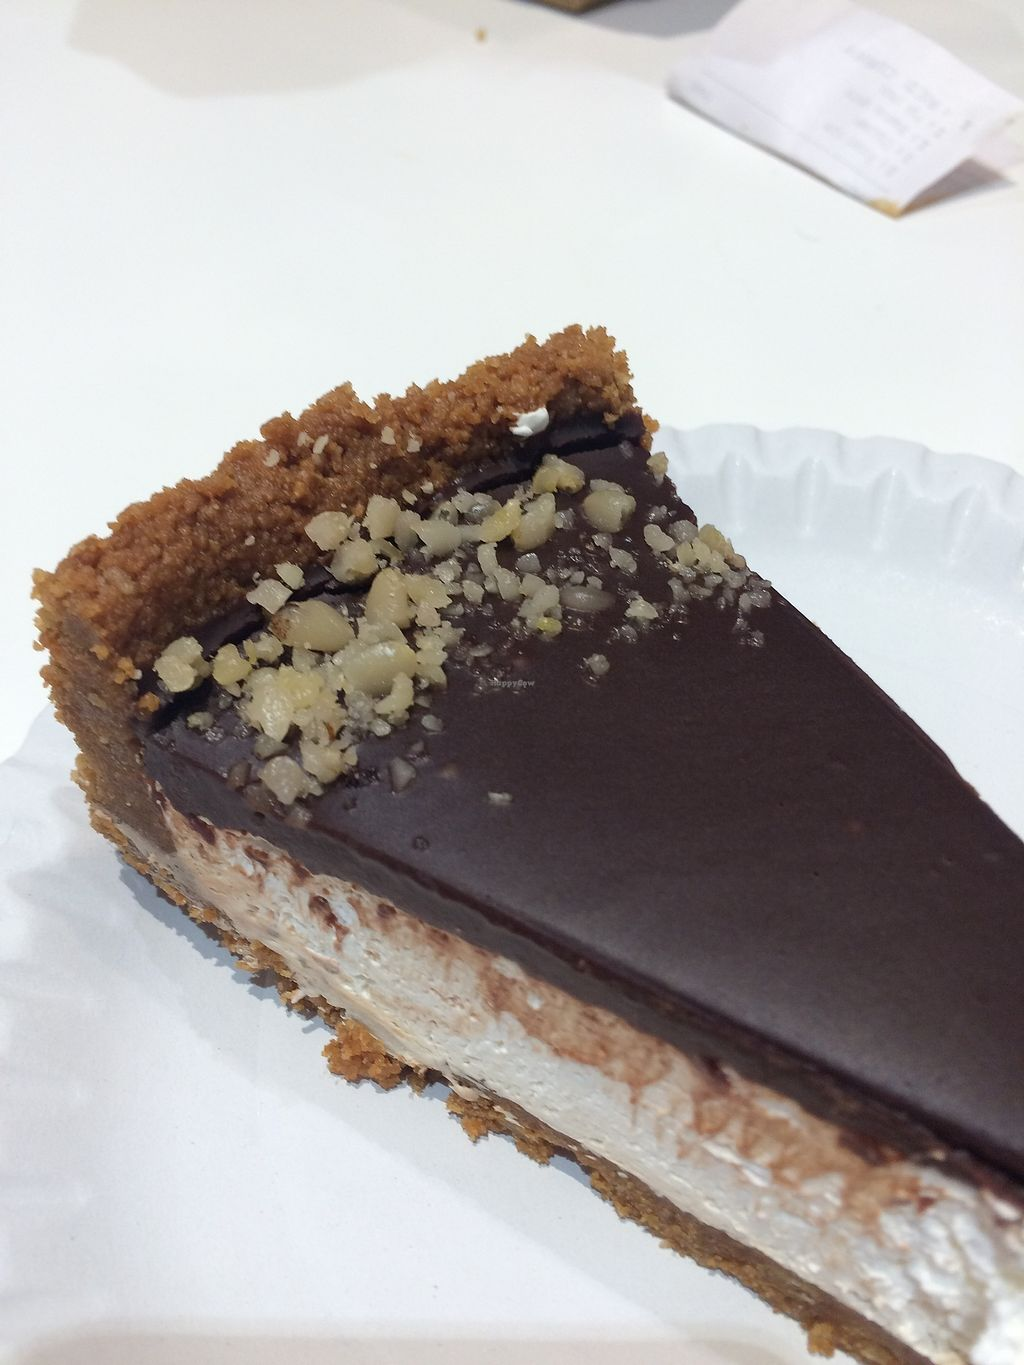 """Photo of Loving Hut - Spalena  by <a href=""""/members/profile/AnetaB%C3%A1rtov%C3%A1"""">AnetaBártová</a> <br/>Lotus cheesecake with creamy and chocolate topping.  <br/> December 9, 2017  - <a href='/contact/abuse/image/106853/333879'>Report</a>"""